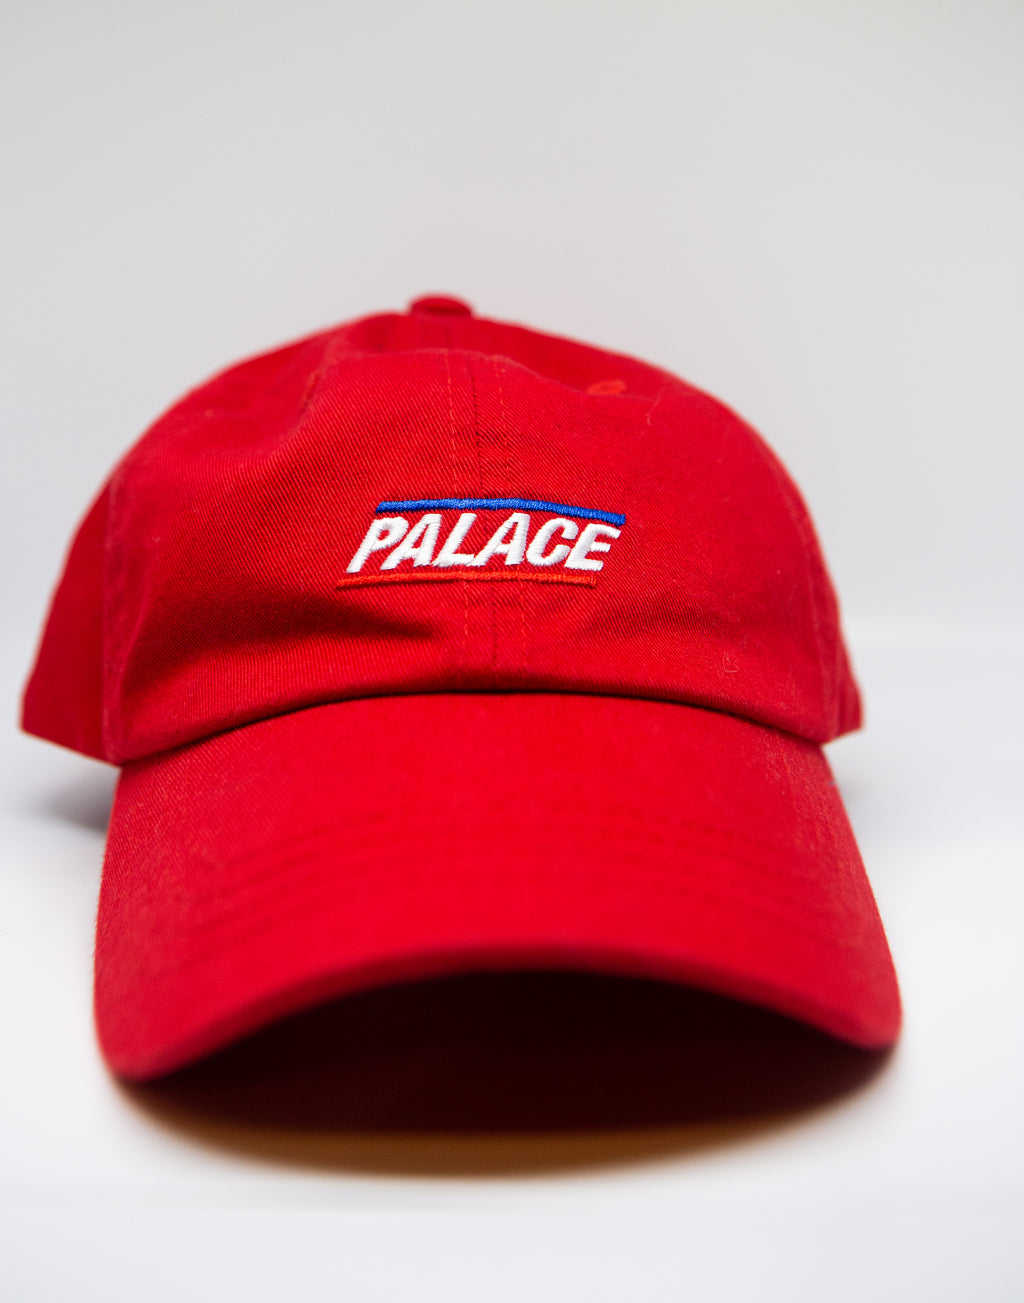 Palace (Basically a 6-Panel)